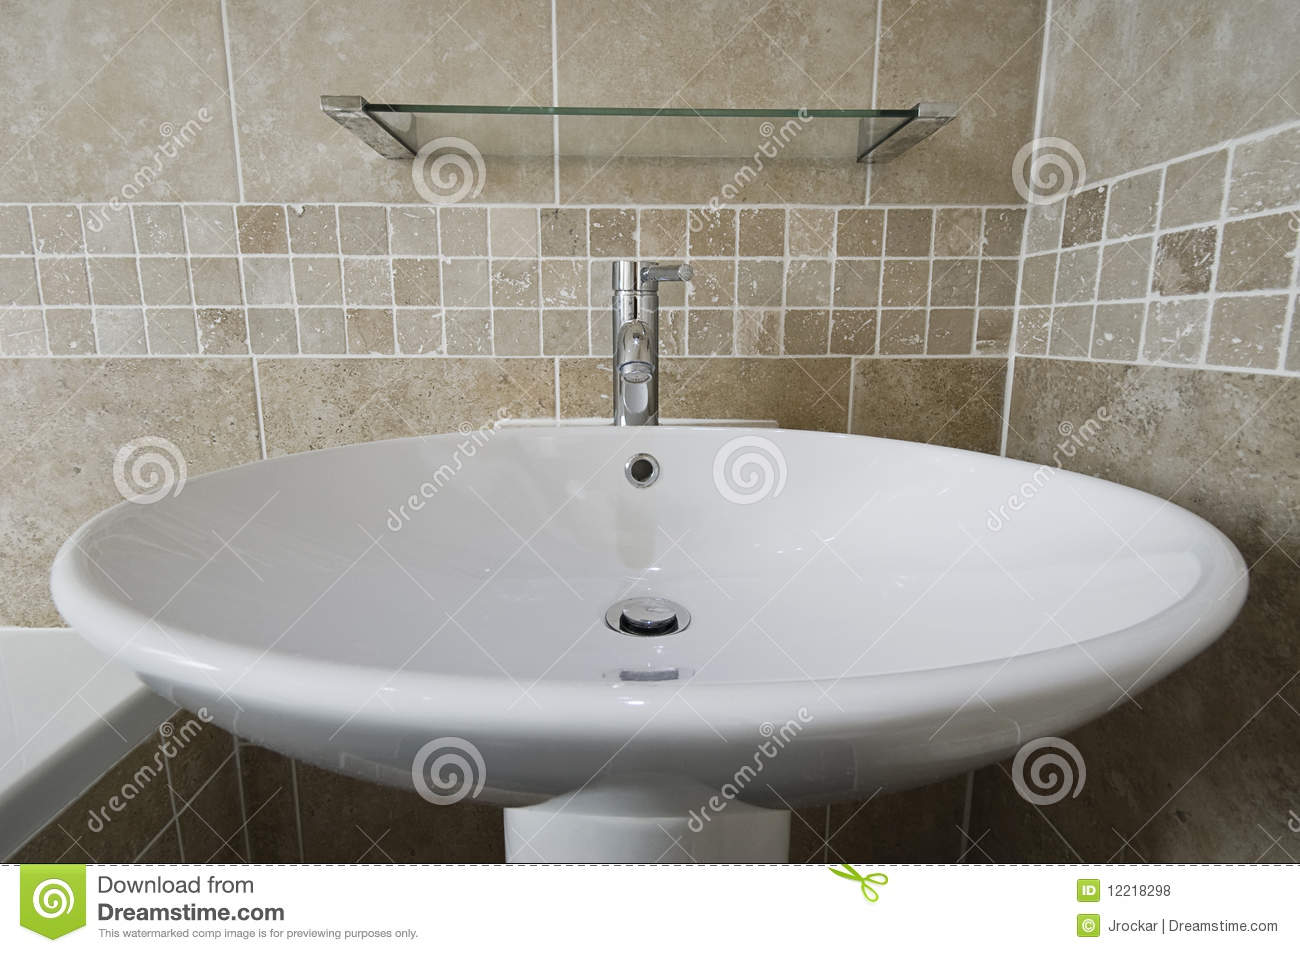 Prix Lavabo Grand Lavabo De Main Photo Stock Image Du Maison